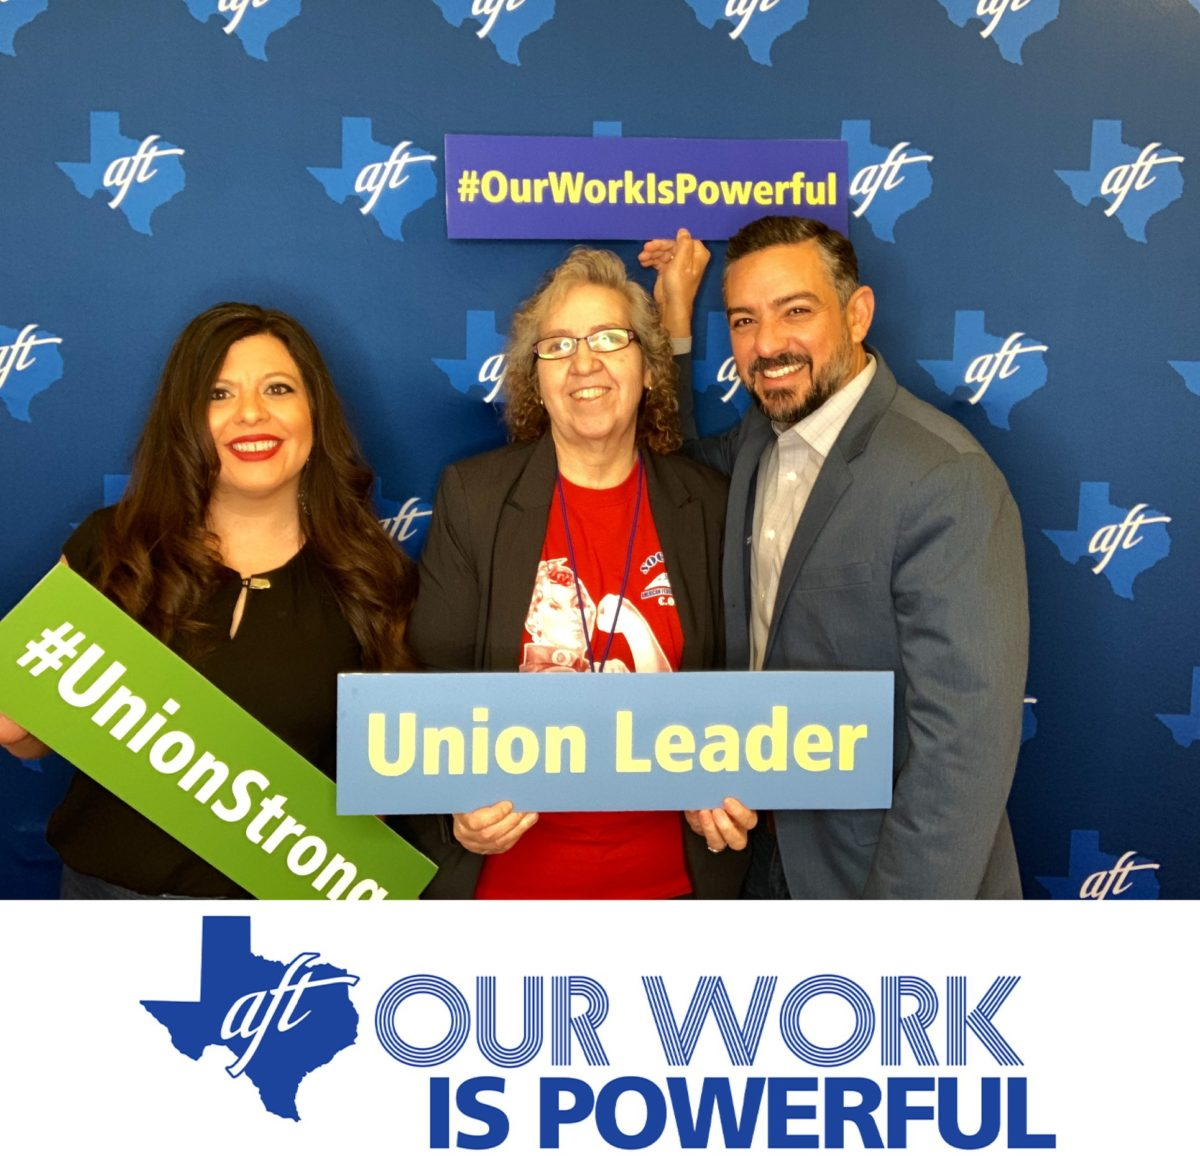 """Veronica Hernandez, Representative Mary Gonzalez, and Senator Cesar Blanco pose for a photo with signs that say """"Union Leader,"""" """"Hashtag Union Strong,"""" and """"Hashtag Our Work Is Powerful."""""""